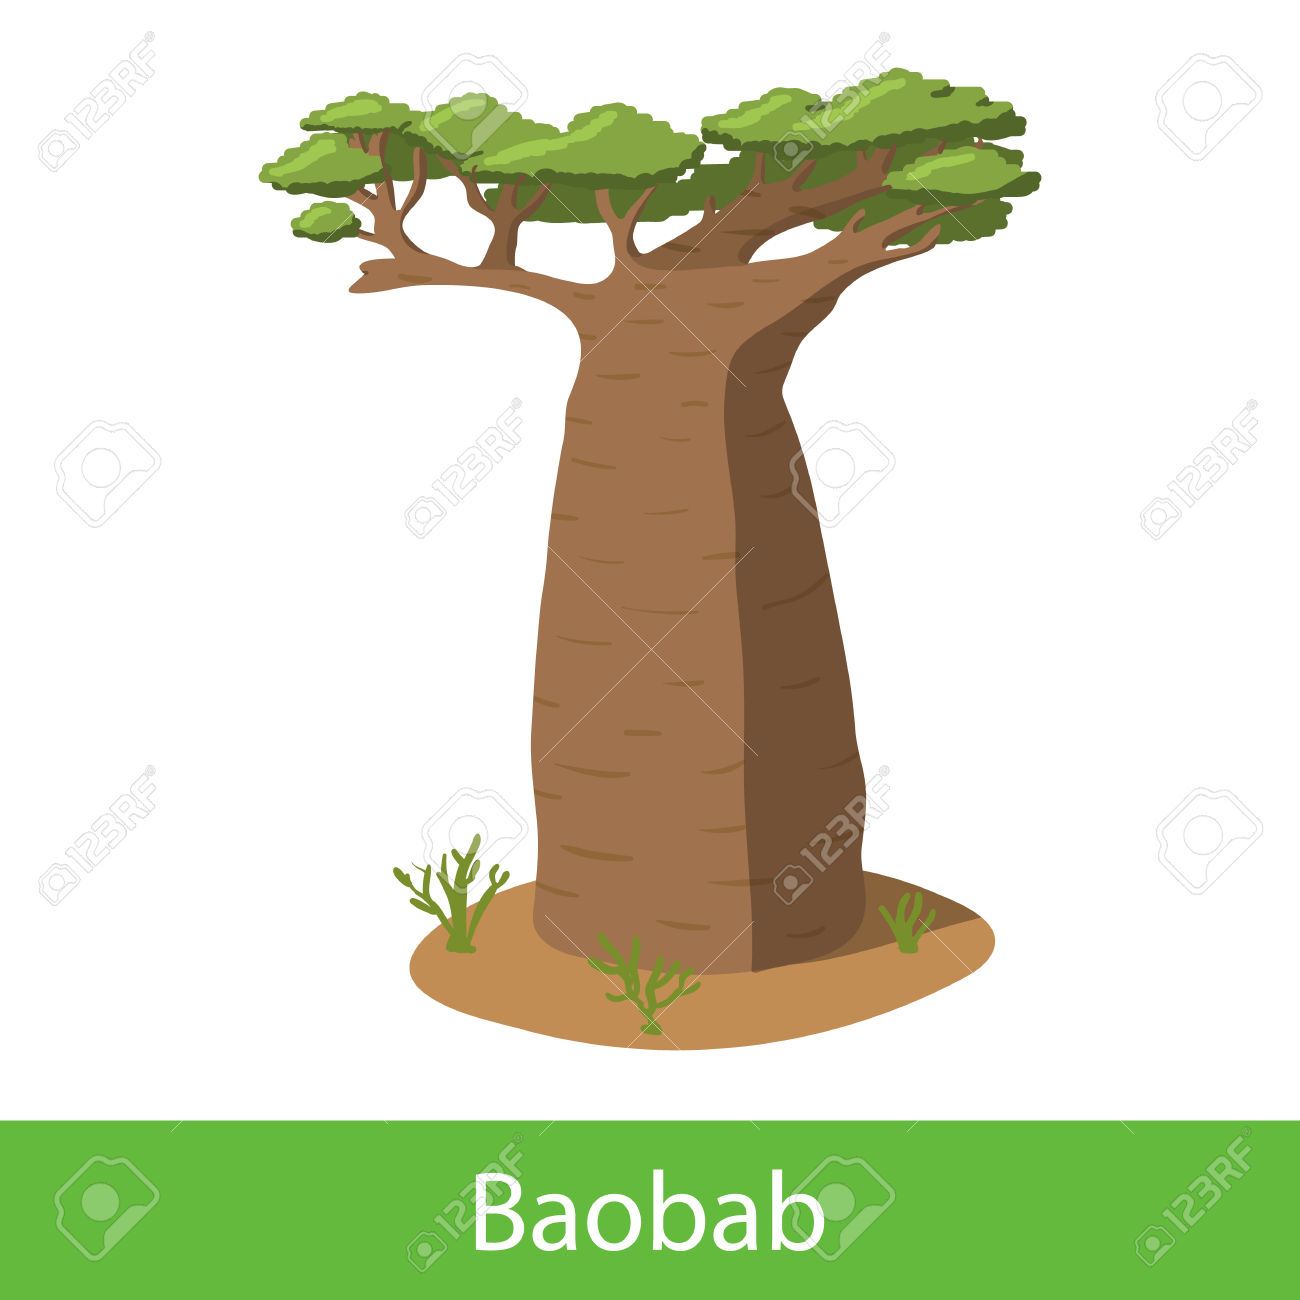 Baobab Cartoon Tree. Single Illustration On A White Background.